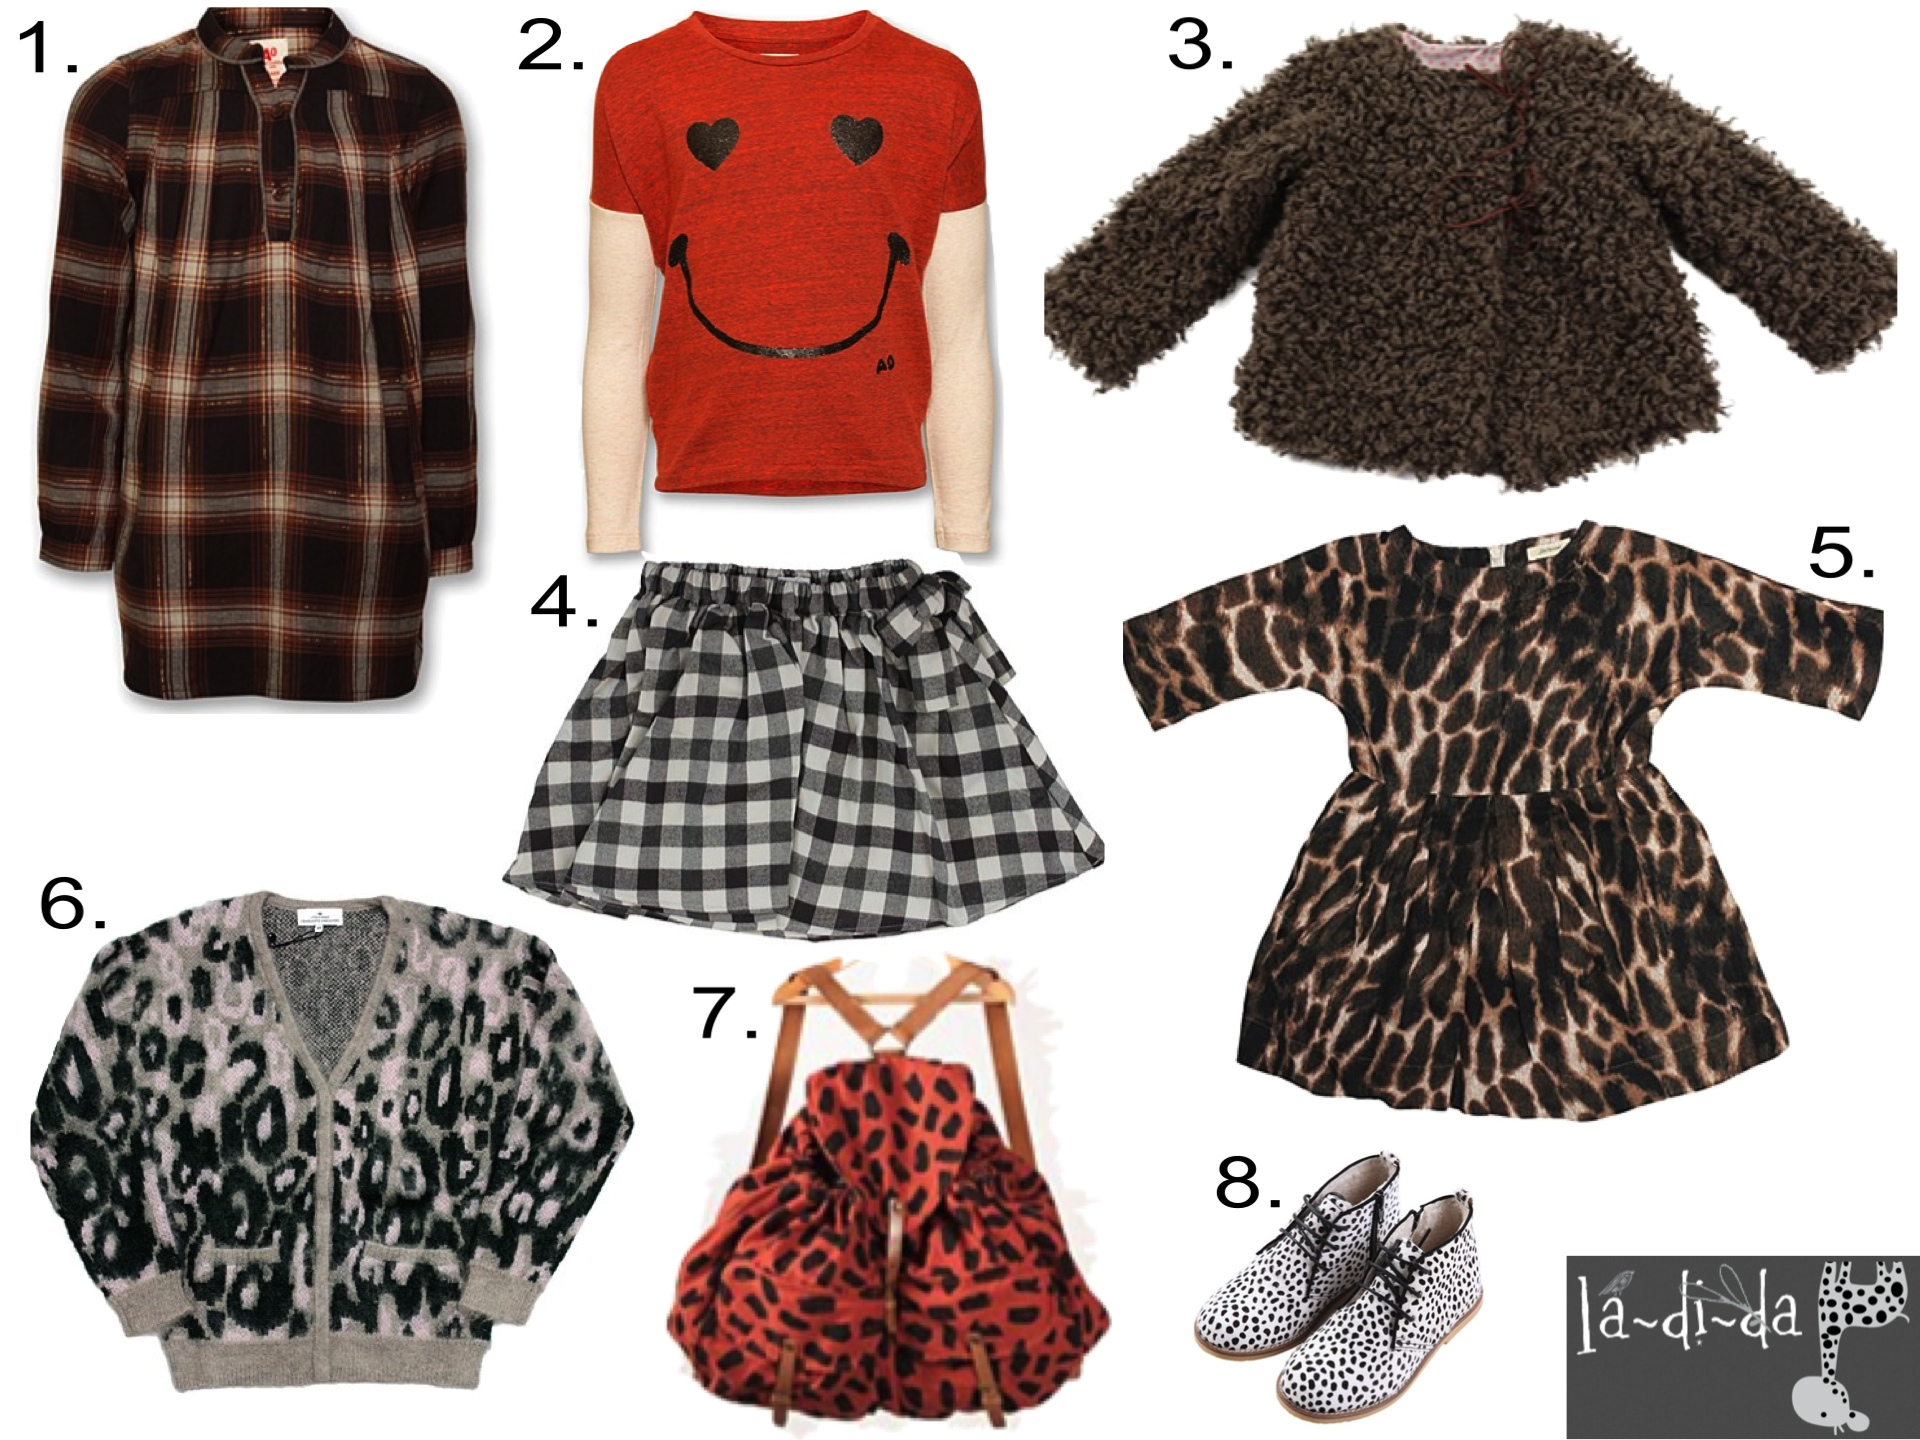 Girls' Fall Favorites from LaDiDa  1.  AO Plaid Shirt Dress  2. AO Smiley Tee  3.  Anais Fuzzy Jacket  4.  Neige Plaid Skirt  5. Belle Leopard Print Dress  6 . Remix Leopard Mohair Cardigan  7.  Bobo Leopard Backpack  8.  Anais Spotted Boots